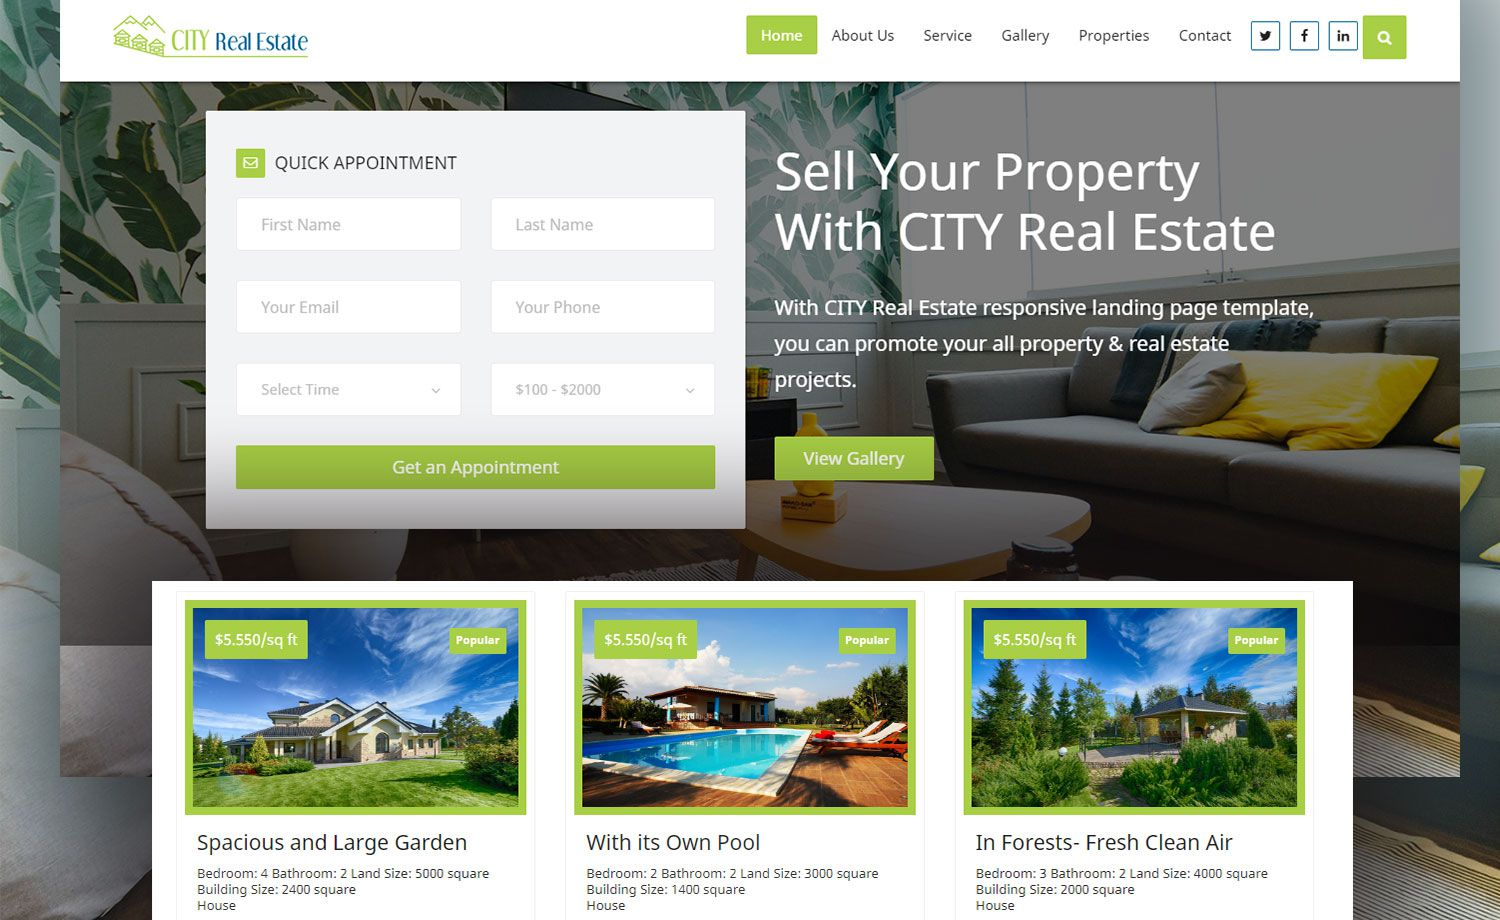 014 Top Real Estate Website Template Highest Quality  Templates Bootstrap Free Html5 Best WordpresFull